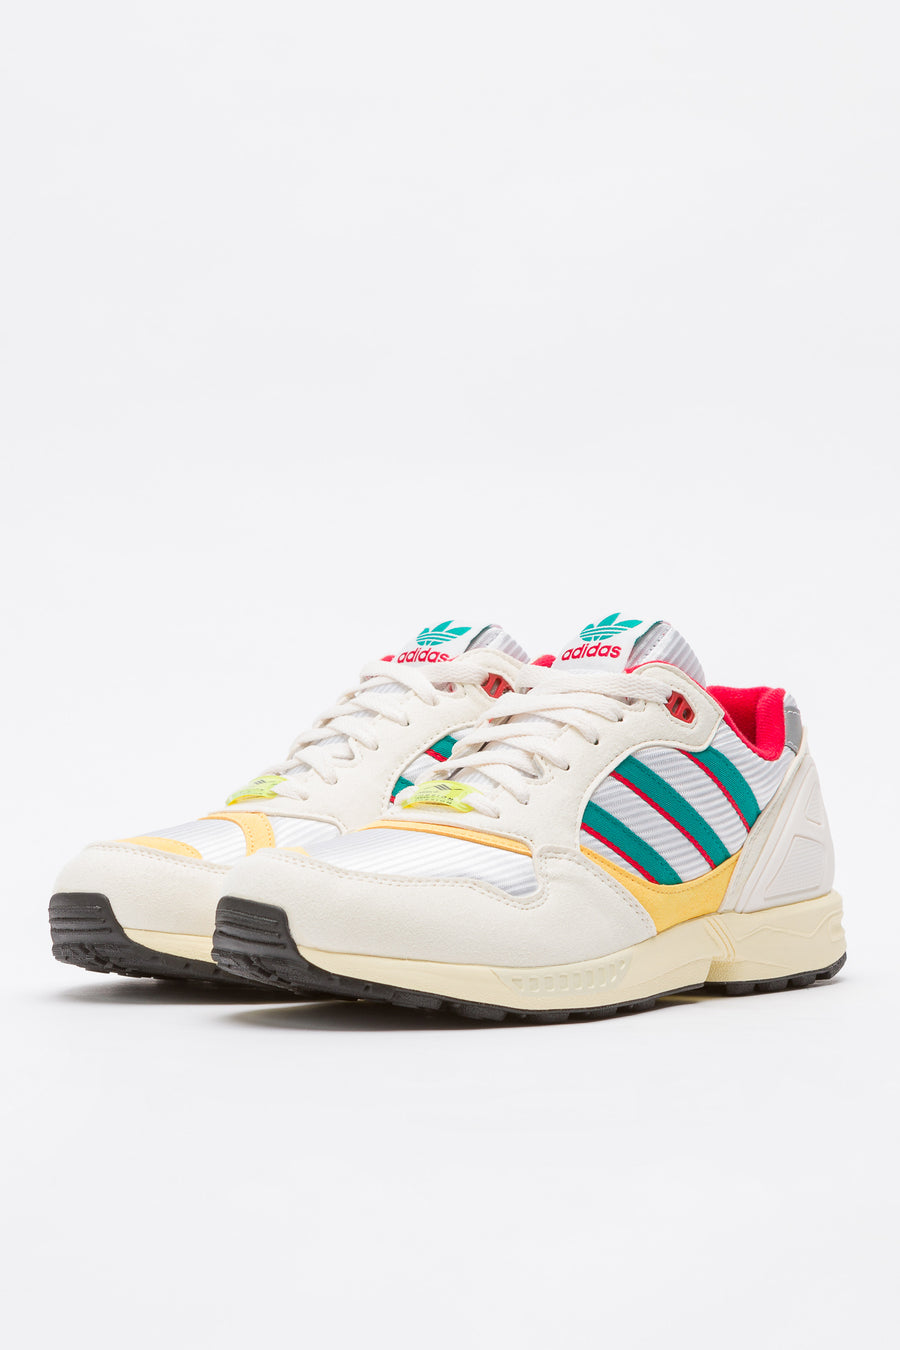 adidas ZX 6000 in Cream/Red/Yellow - Notre